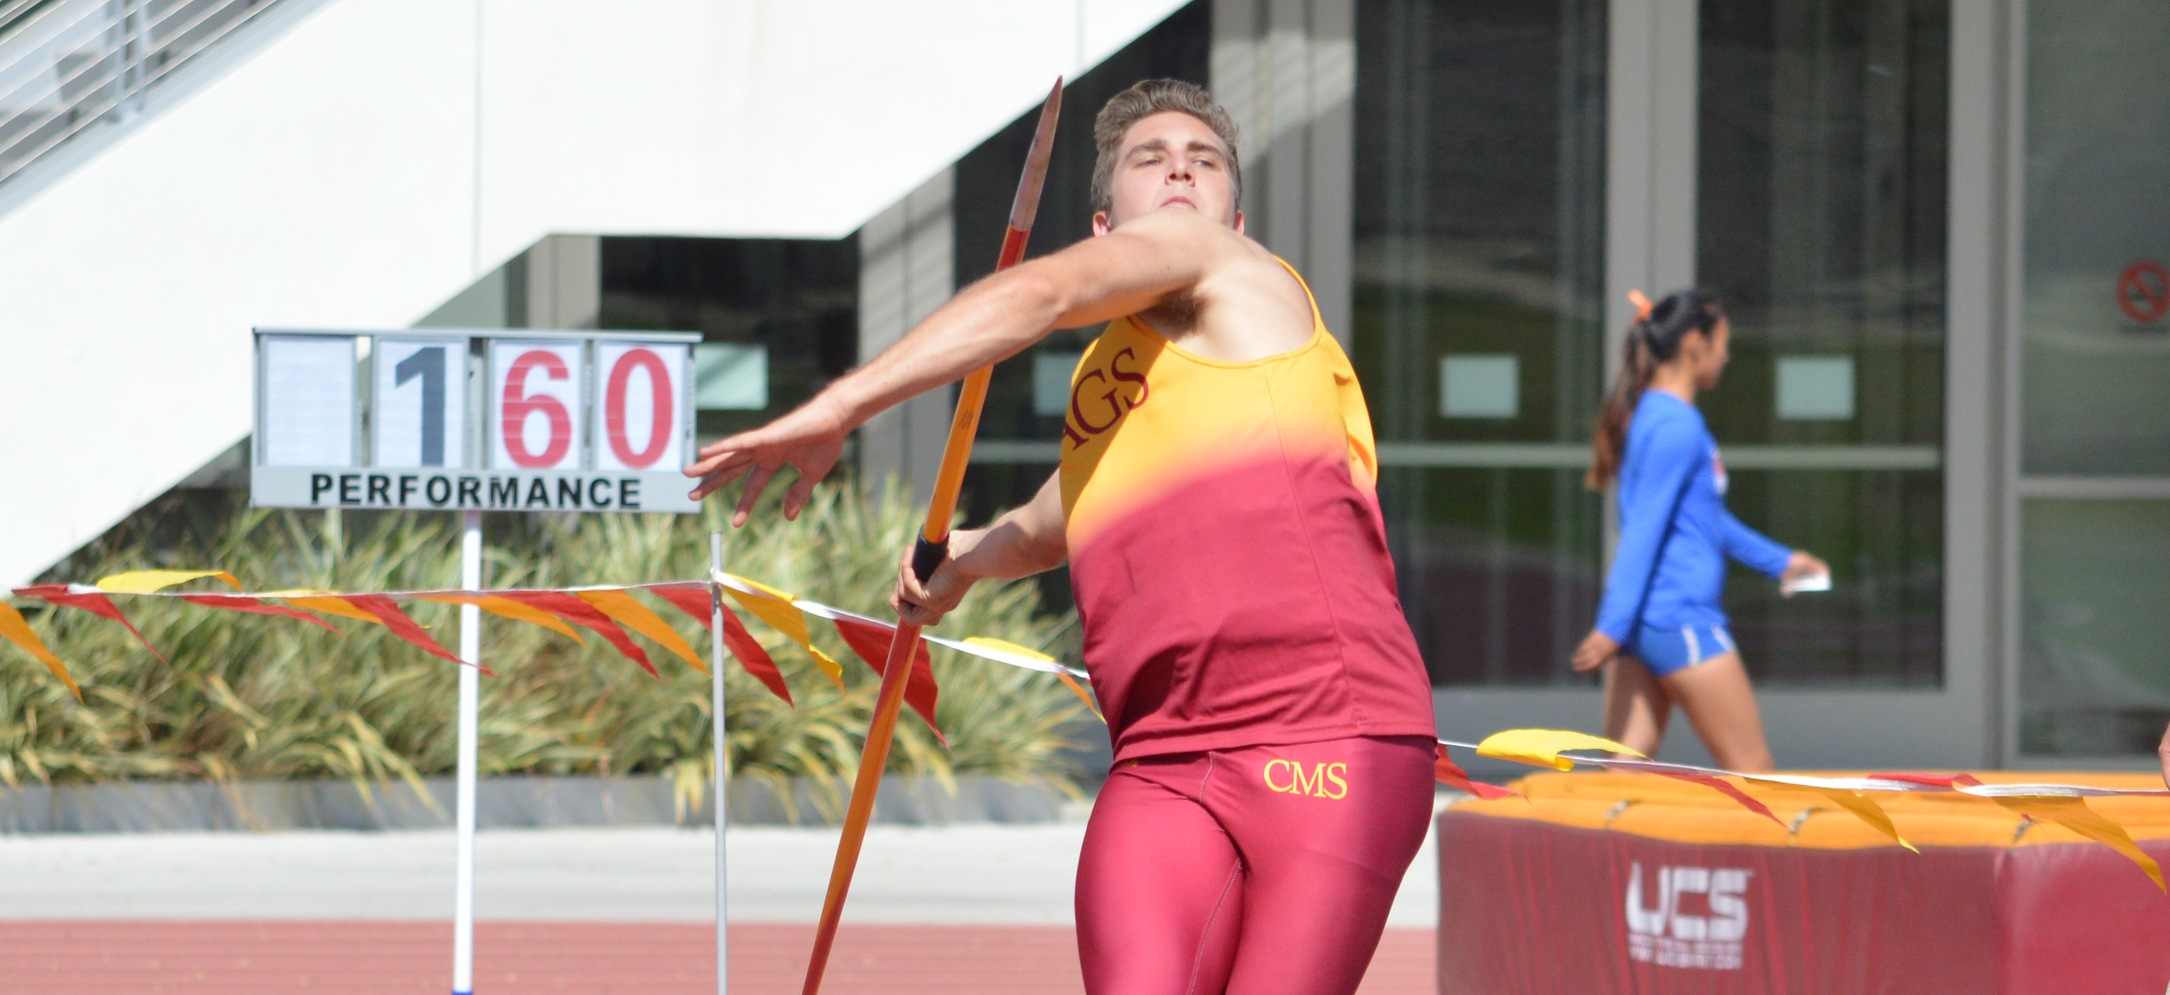 Connor Schulz (CMC) set a new personal record in the javelin throw. (photo credit: Hannah Graves)